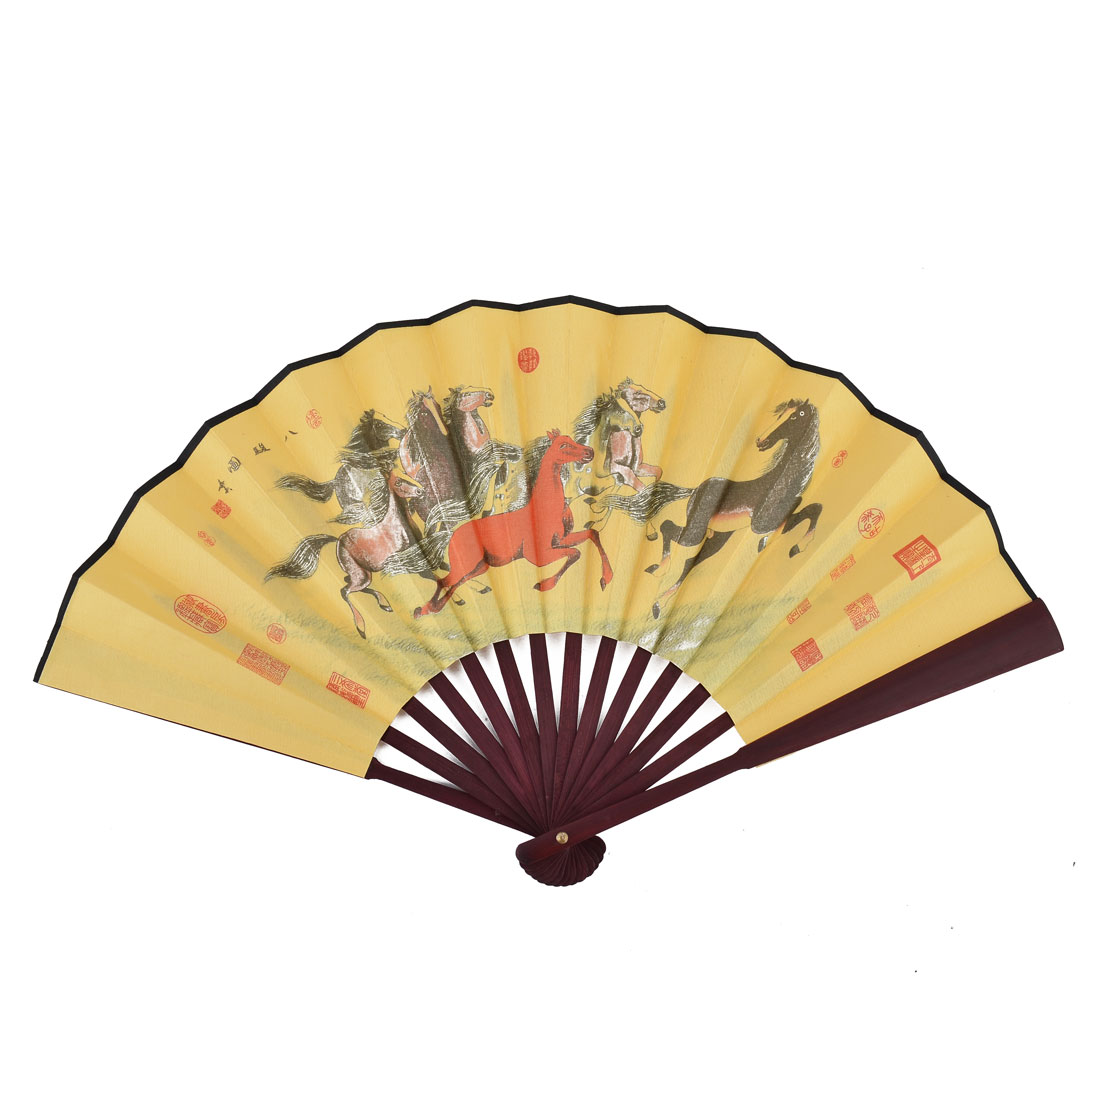 Family Wood Frame Horses Pattern Chinese Poem Painting Collection Folding Fan